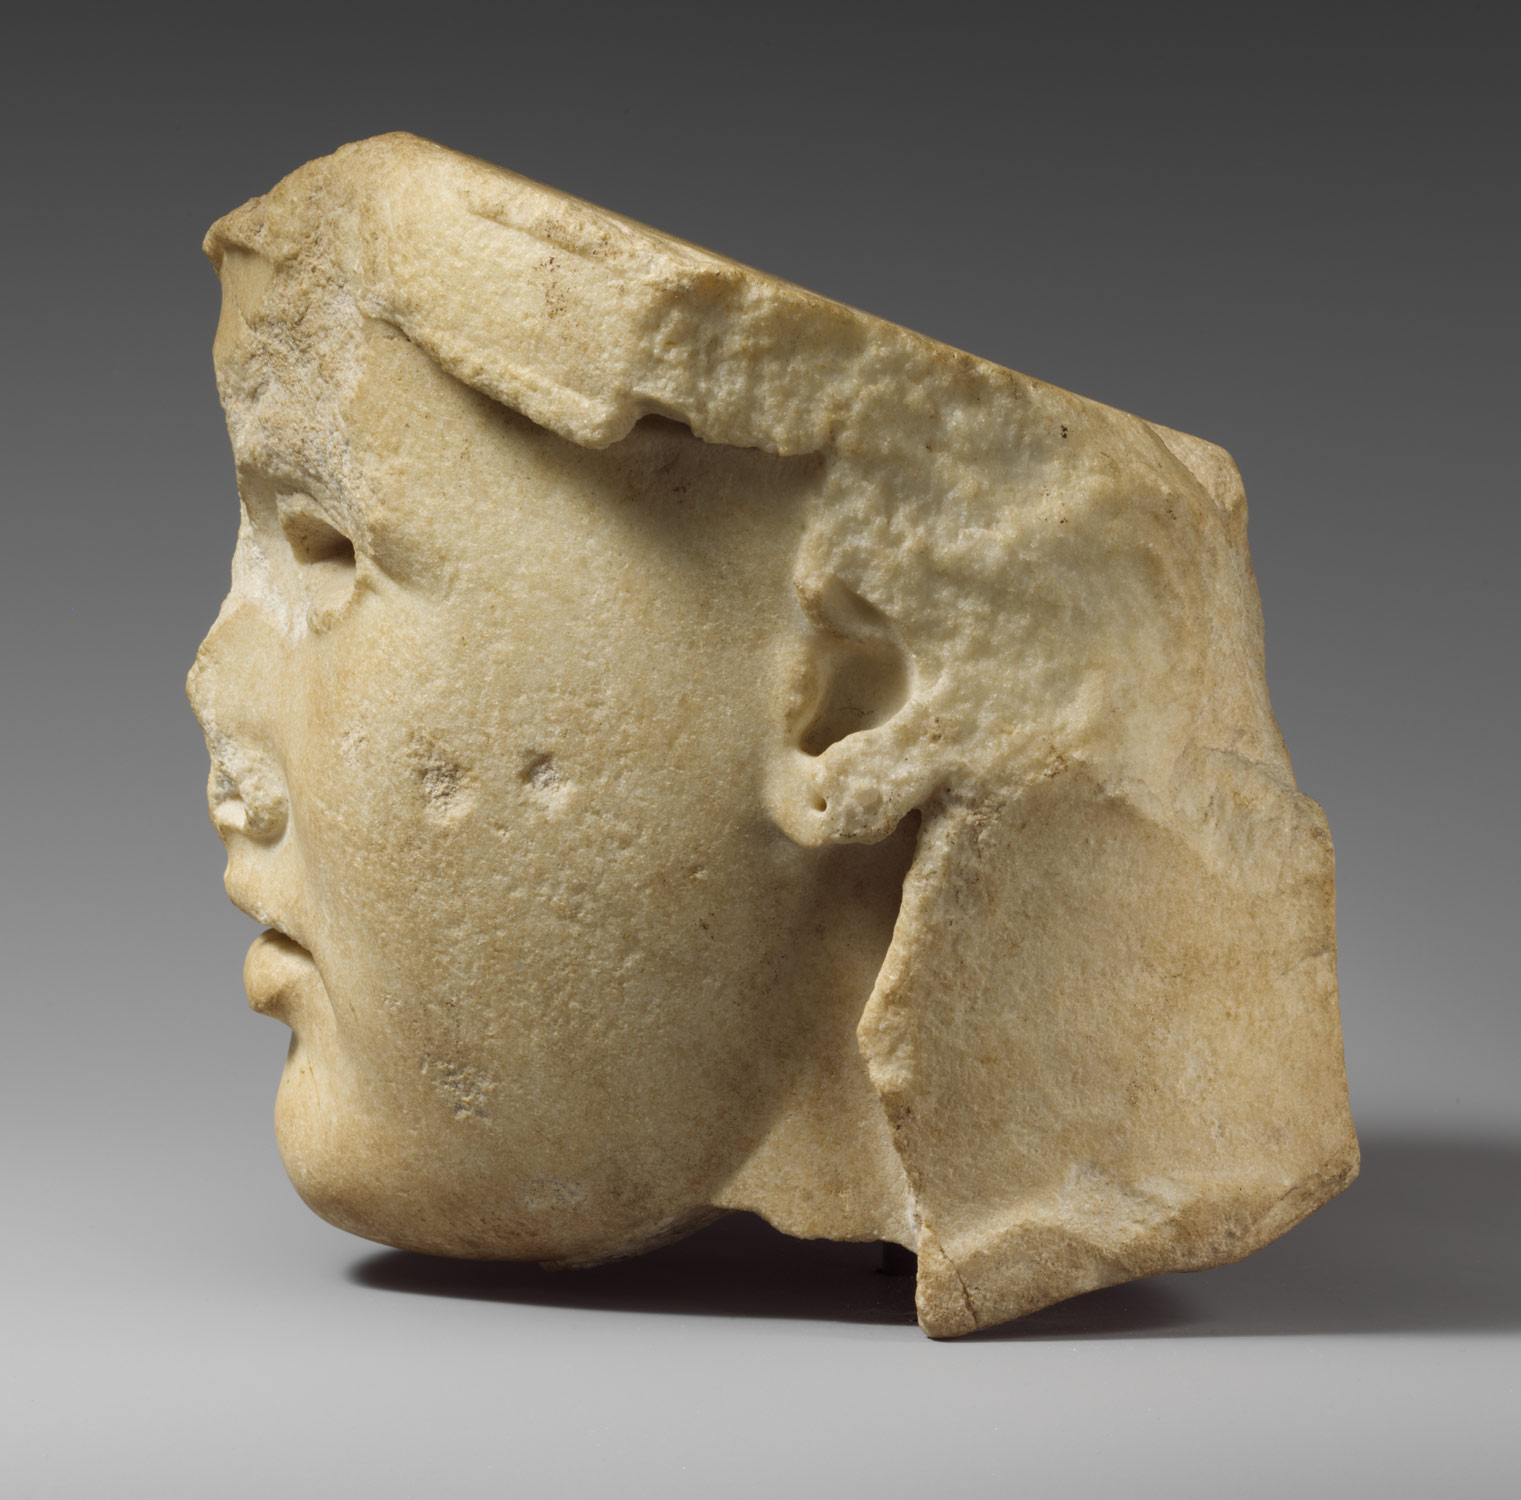 Marble head of Athena: The so-called Athena Medici